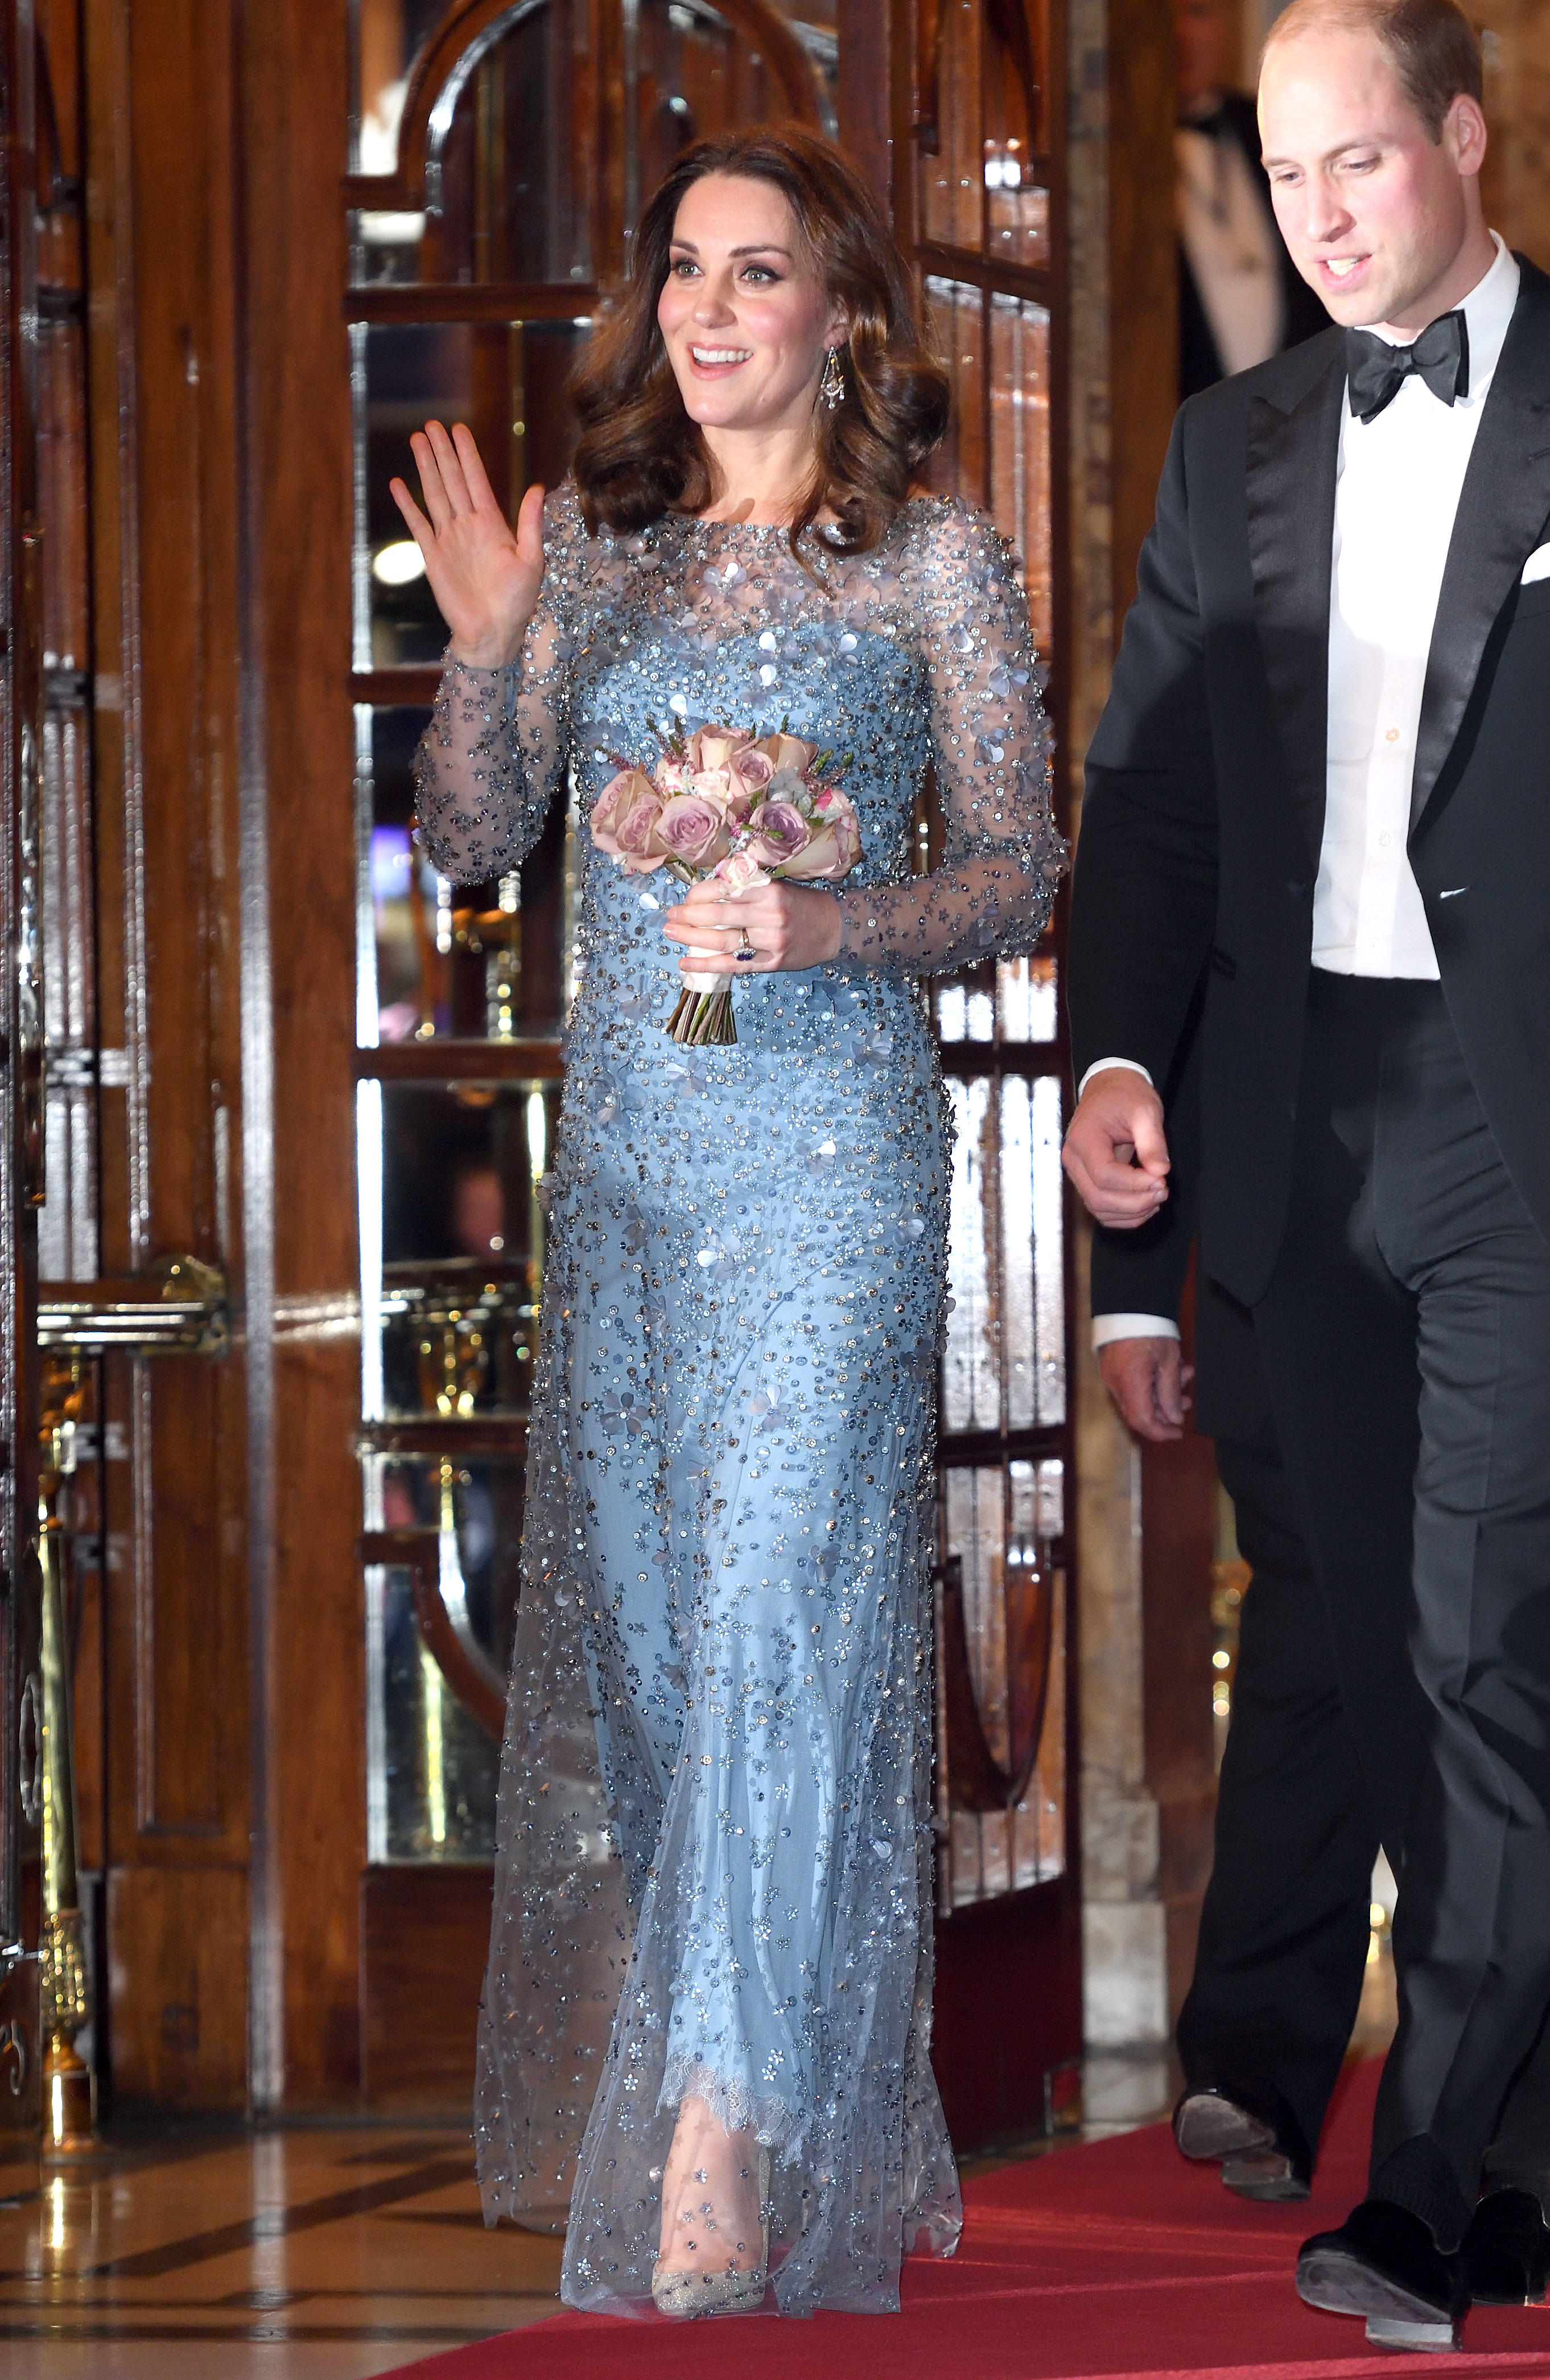 The Duke & Duchess Of Cambridge Attend The Royal Variety Performance